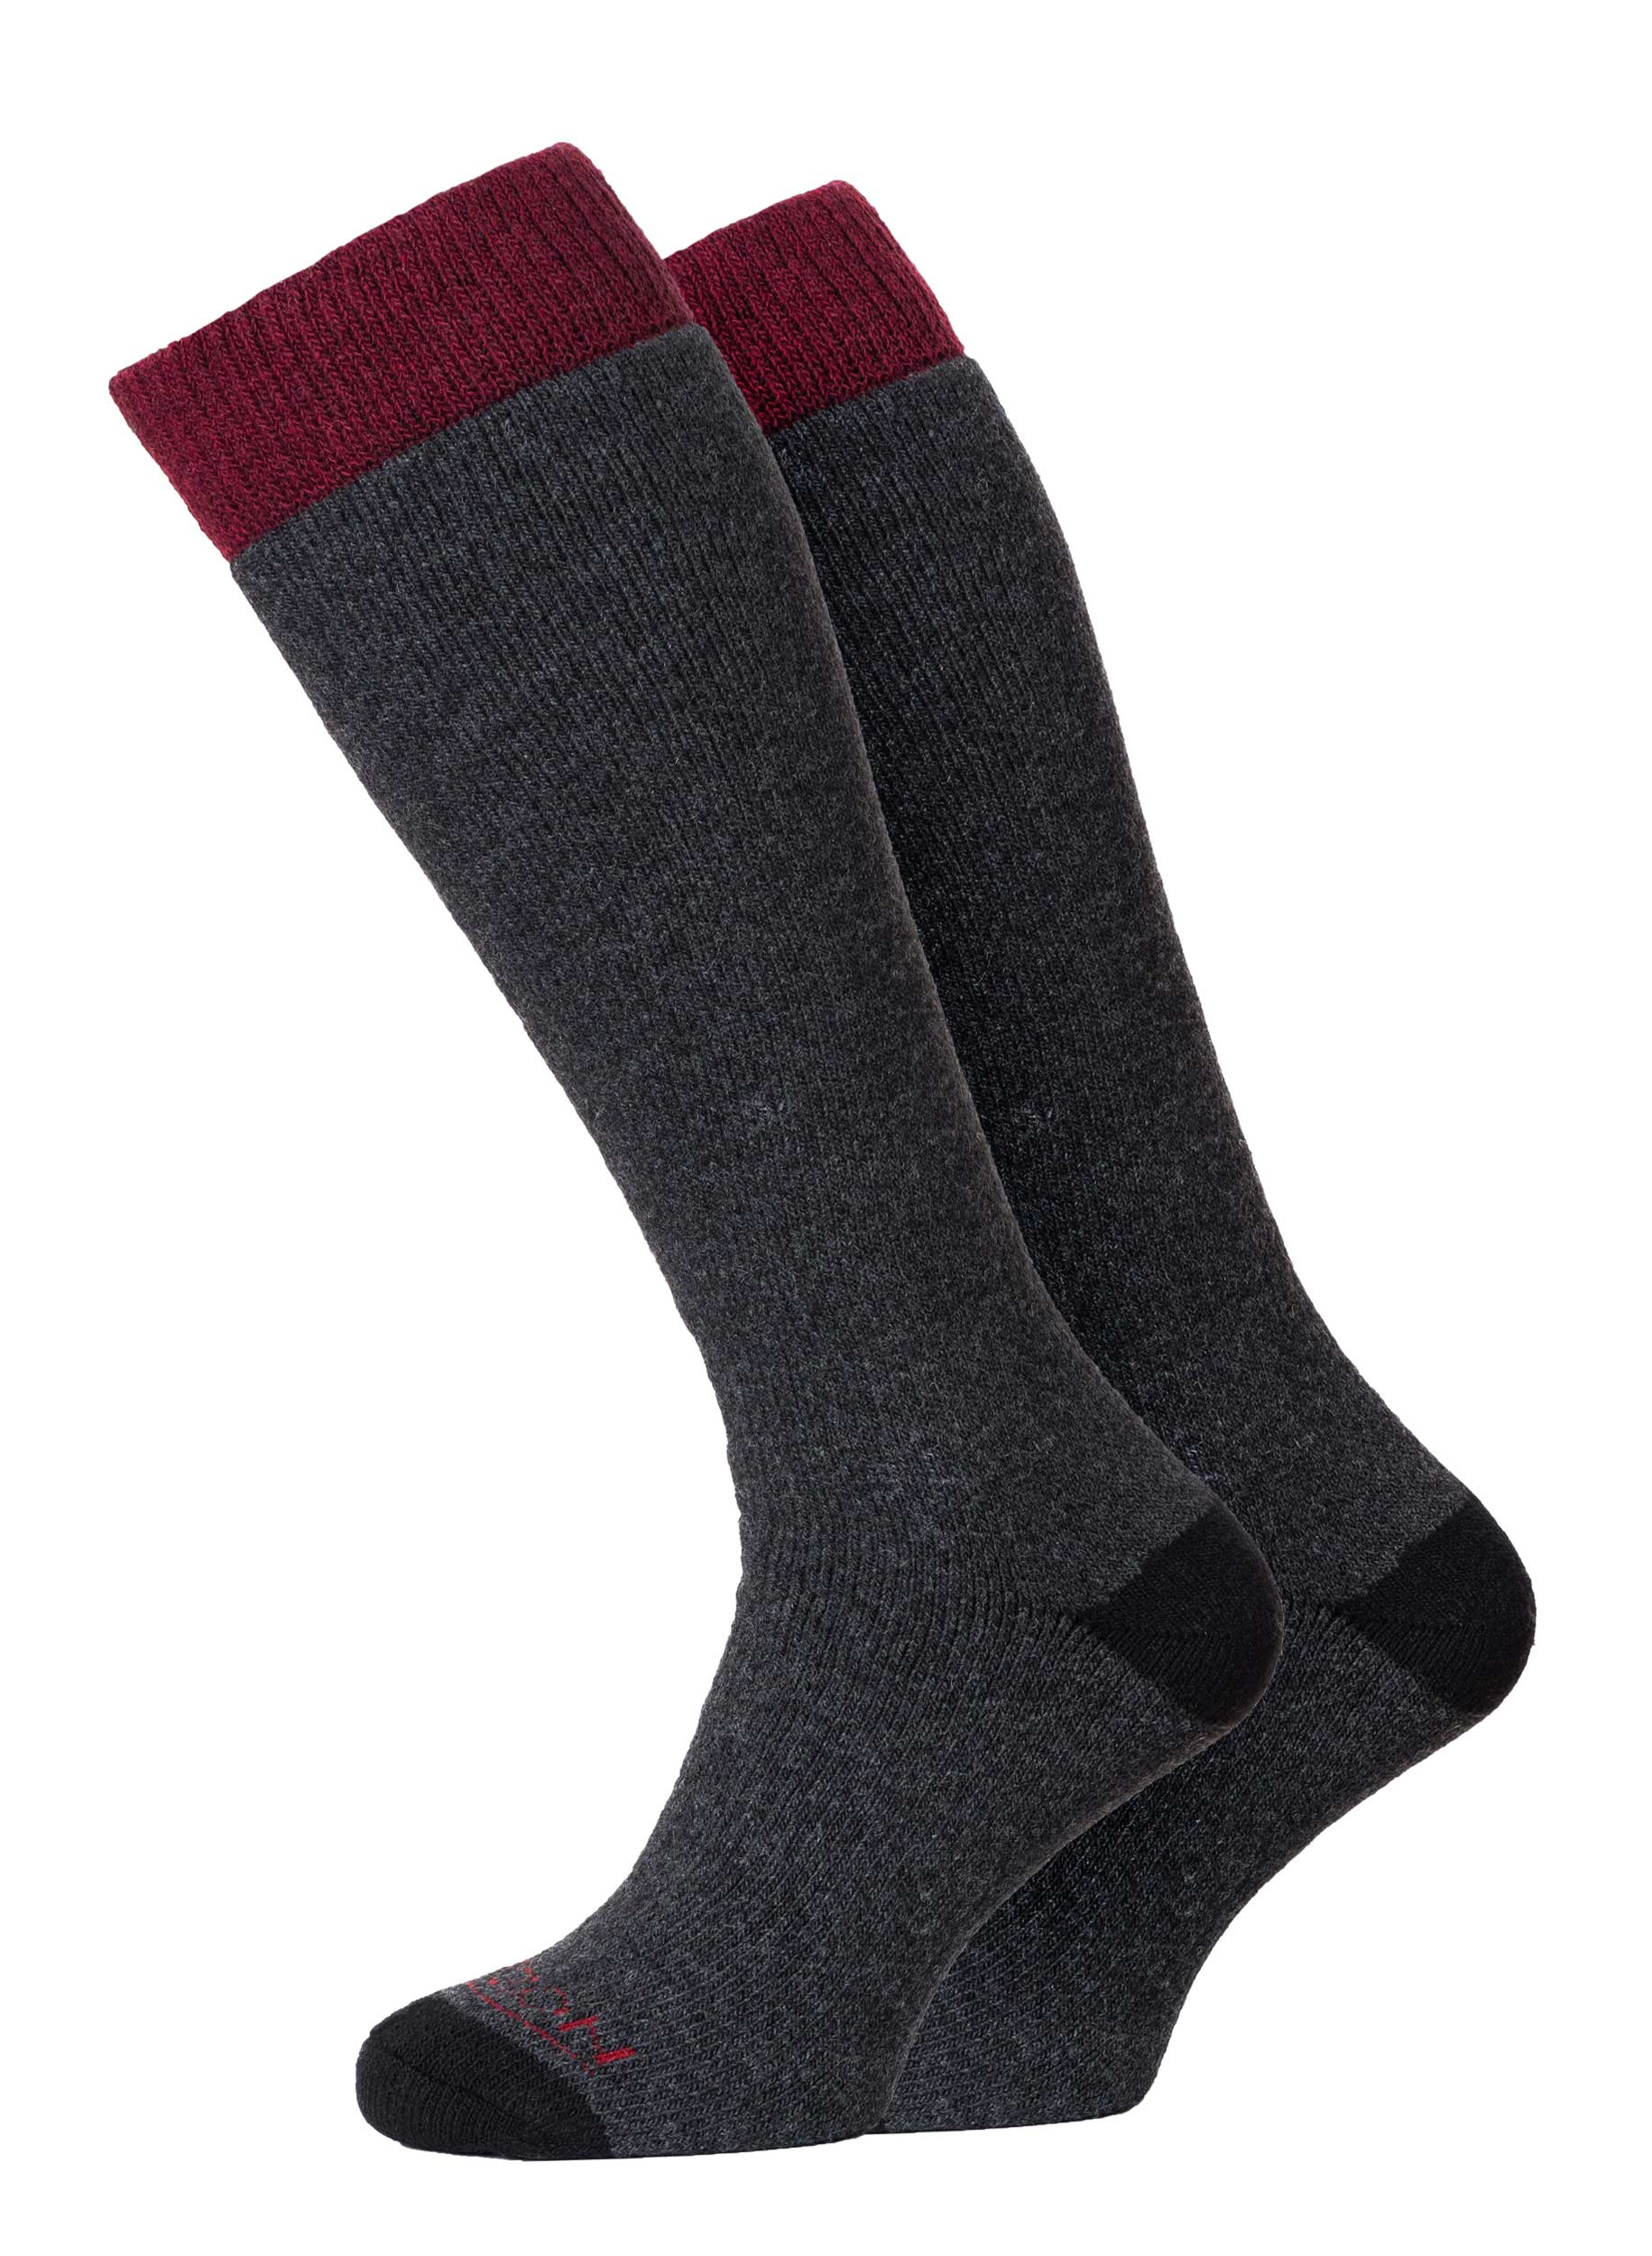 Winter Sport Merino 2pk Anthracite/Burgundy